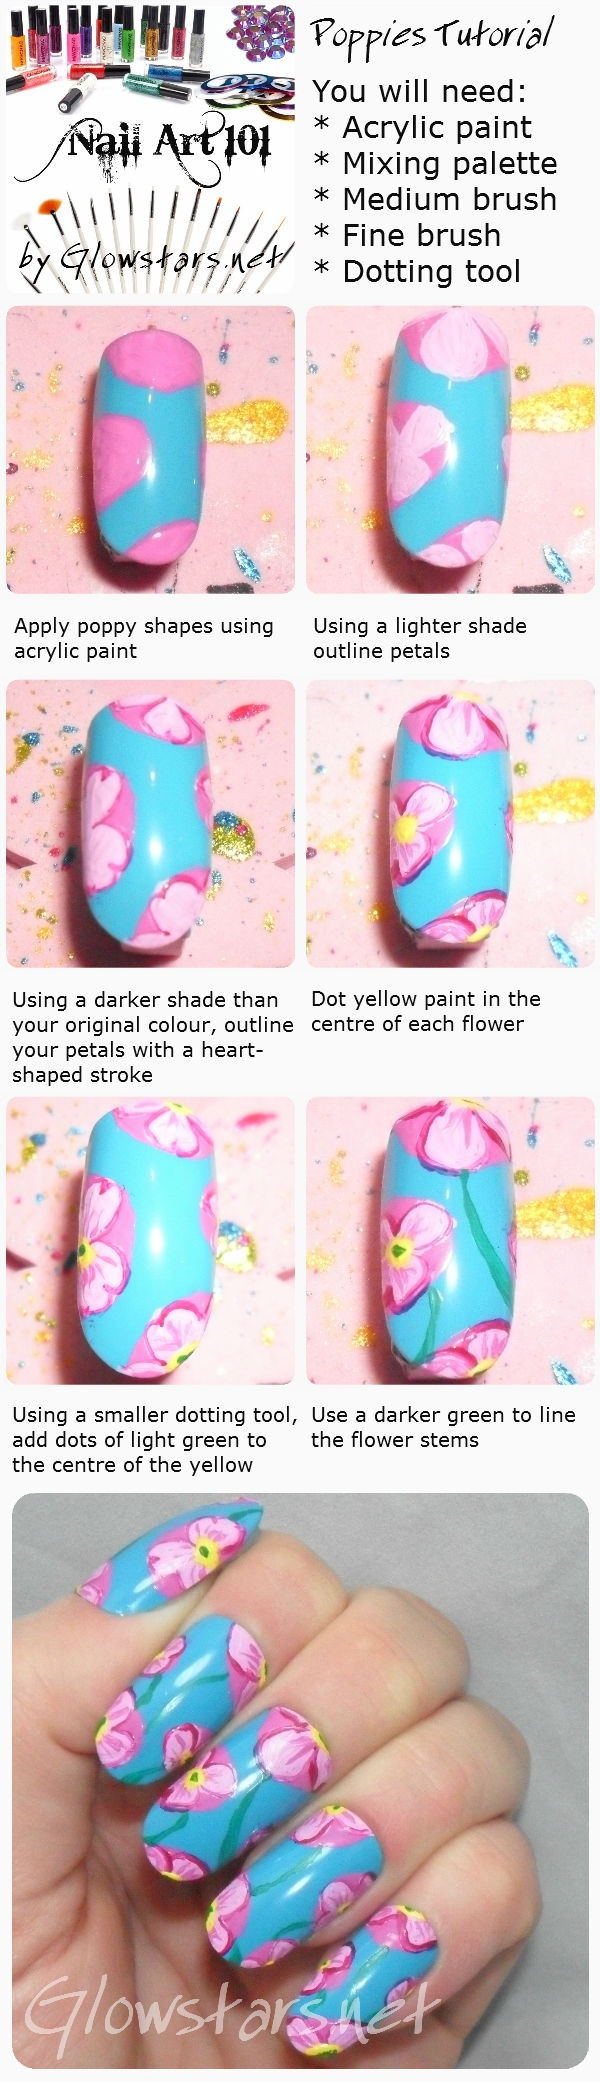 Nail Art 101: Poppies Tutorial